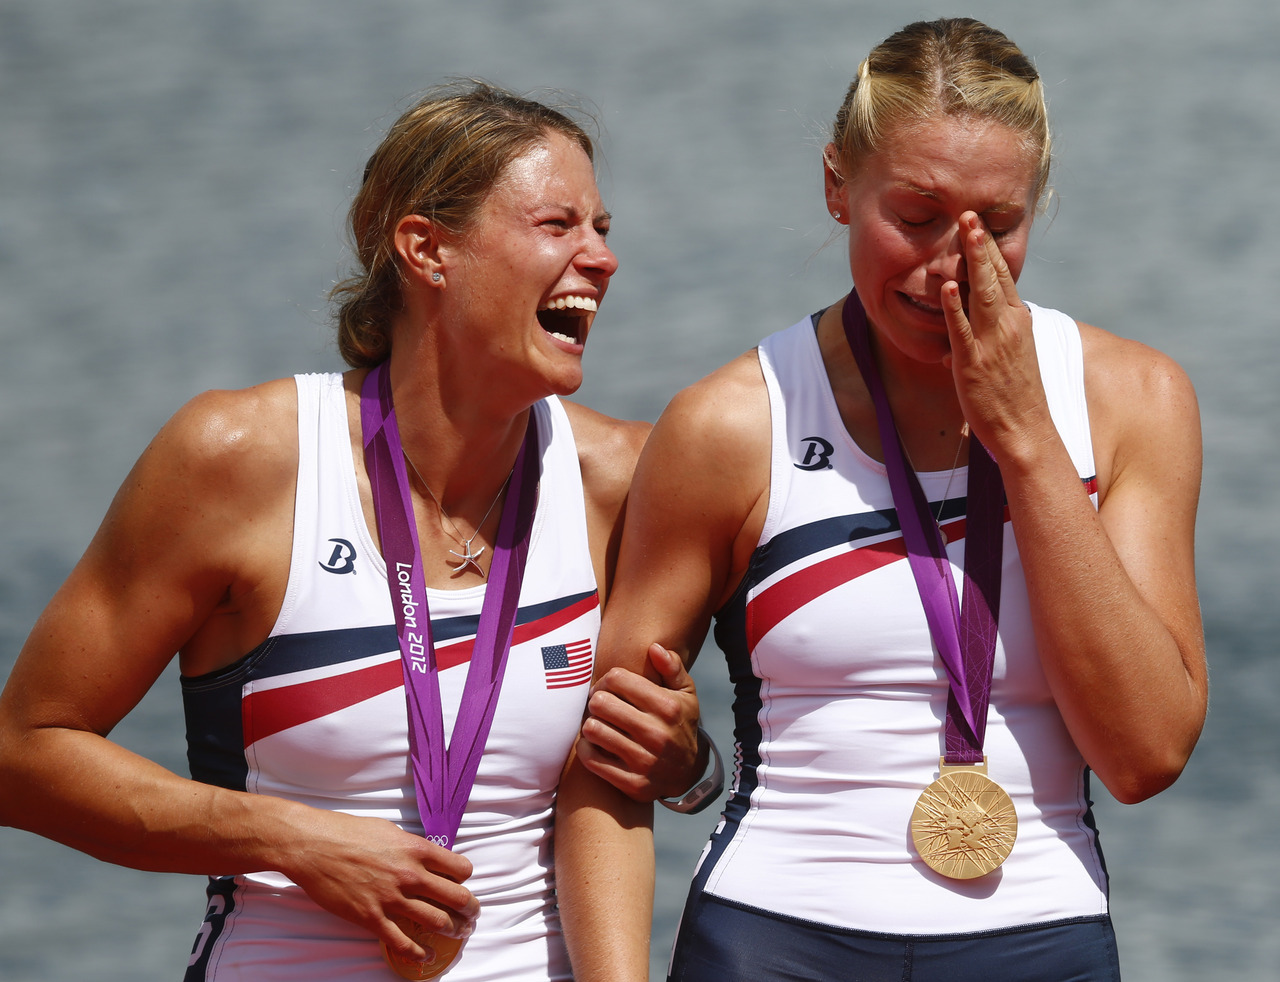 "The United States powered to gold in the flagship women's Olympic eight on Thursday after fighting off fierce rivals Canada to maintain their stunning six-year winning streak and cap a thrilling day of racing on Dorney Lake. The American women's crew are likely to receive a heroes welcome following their emphatic win on the course to the west of London which confirmed their dominance of the event. Having taken a half a length lead over Canada and the Netherlands in the early stages they had to hold on as their neighbours came back at them before 25,000 roaring fans packed into the course to the west of London. ""This was awesome, at the end I don't think I could have pulled one more stroke,"" Caroline Lind told reporters on the side of the lake after they had earlier punched the air and splashed the water as they crossed the line. ""We got the gold and that is what mattered."" READ ON: U.S. rowers storm to gold"